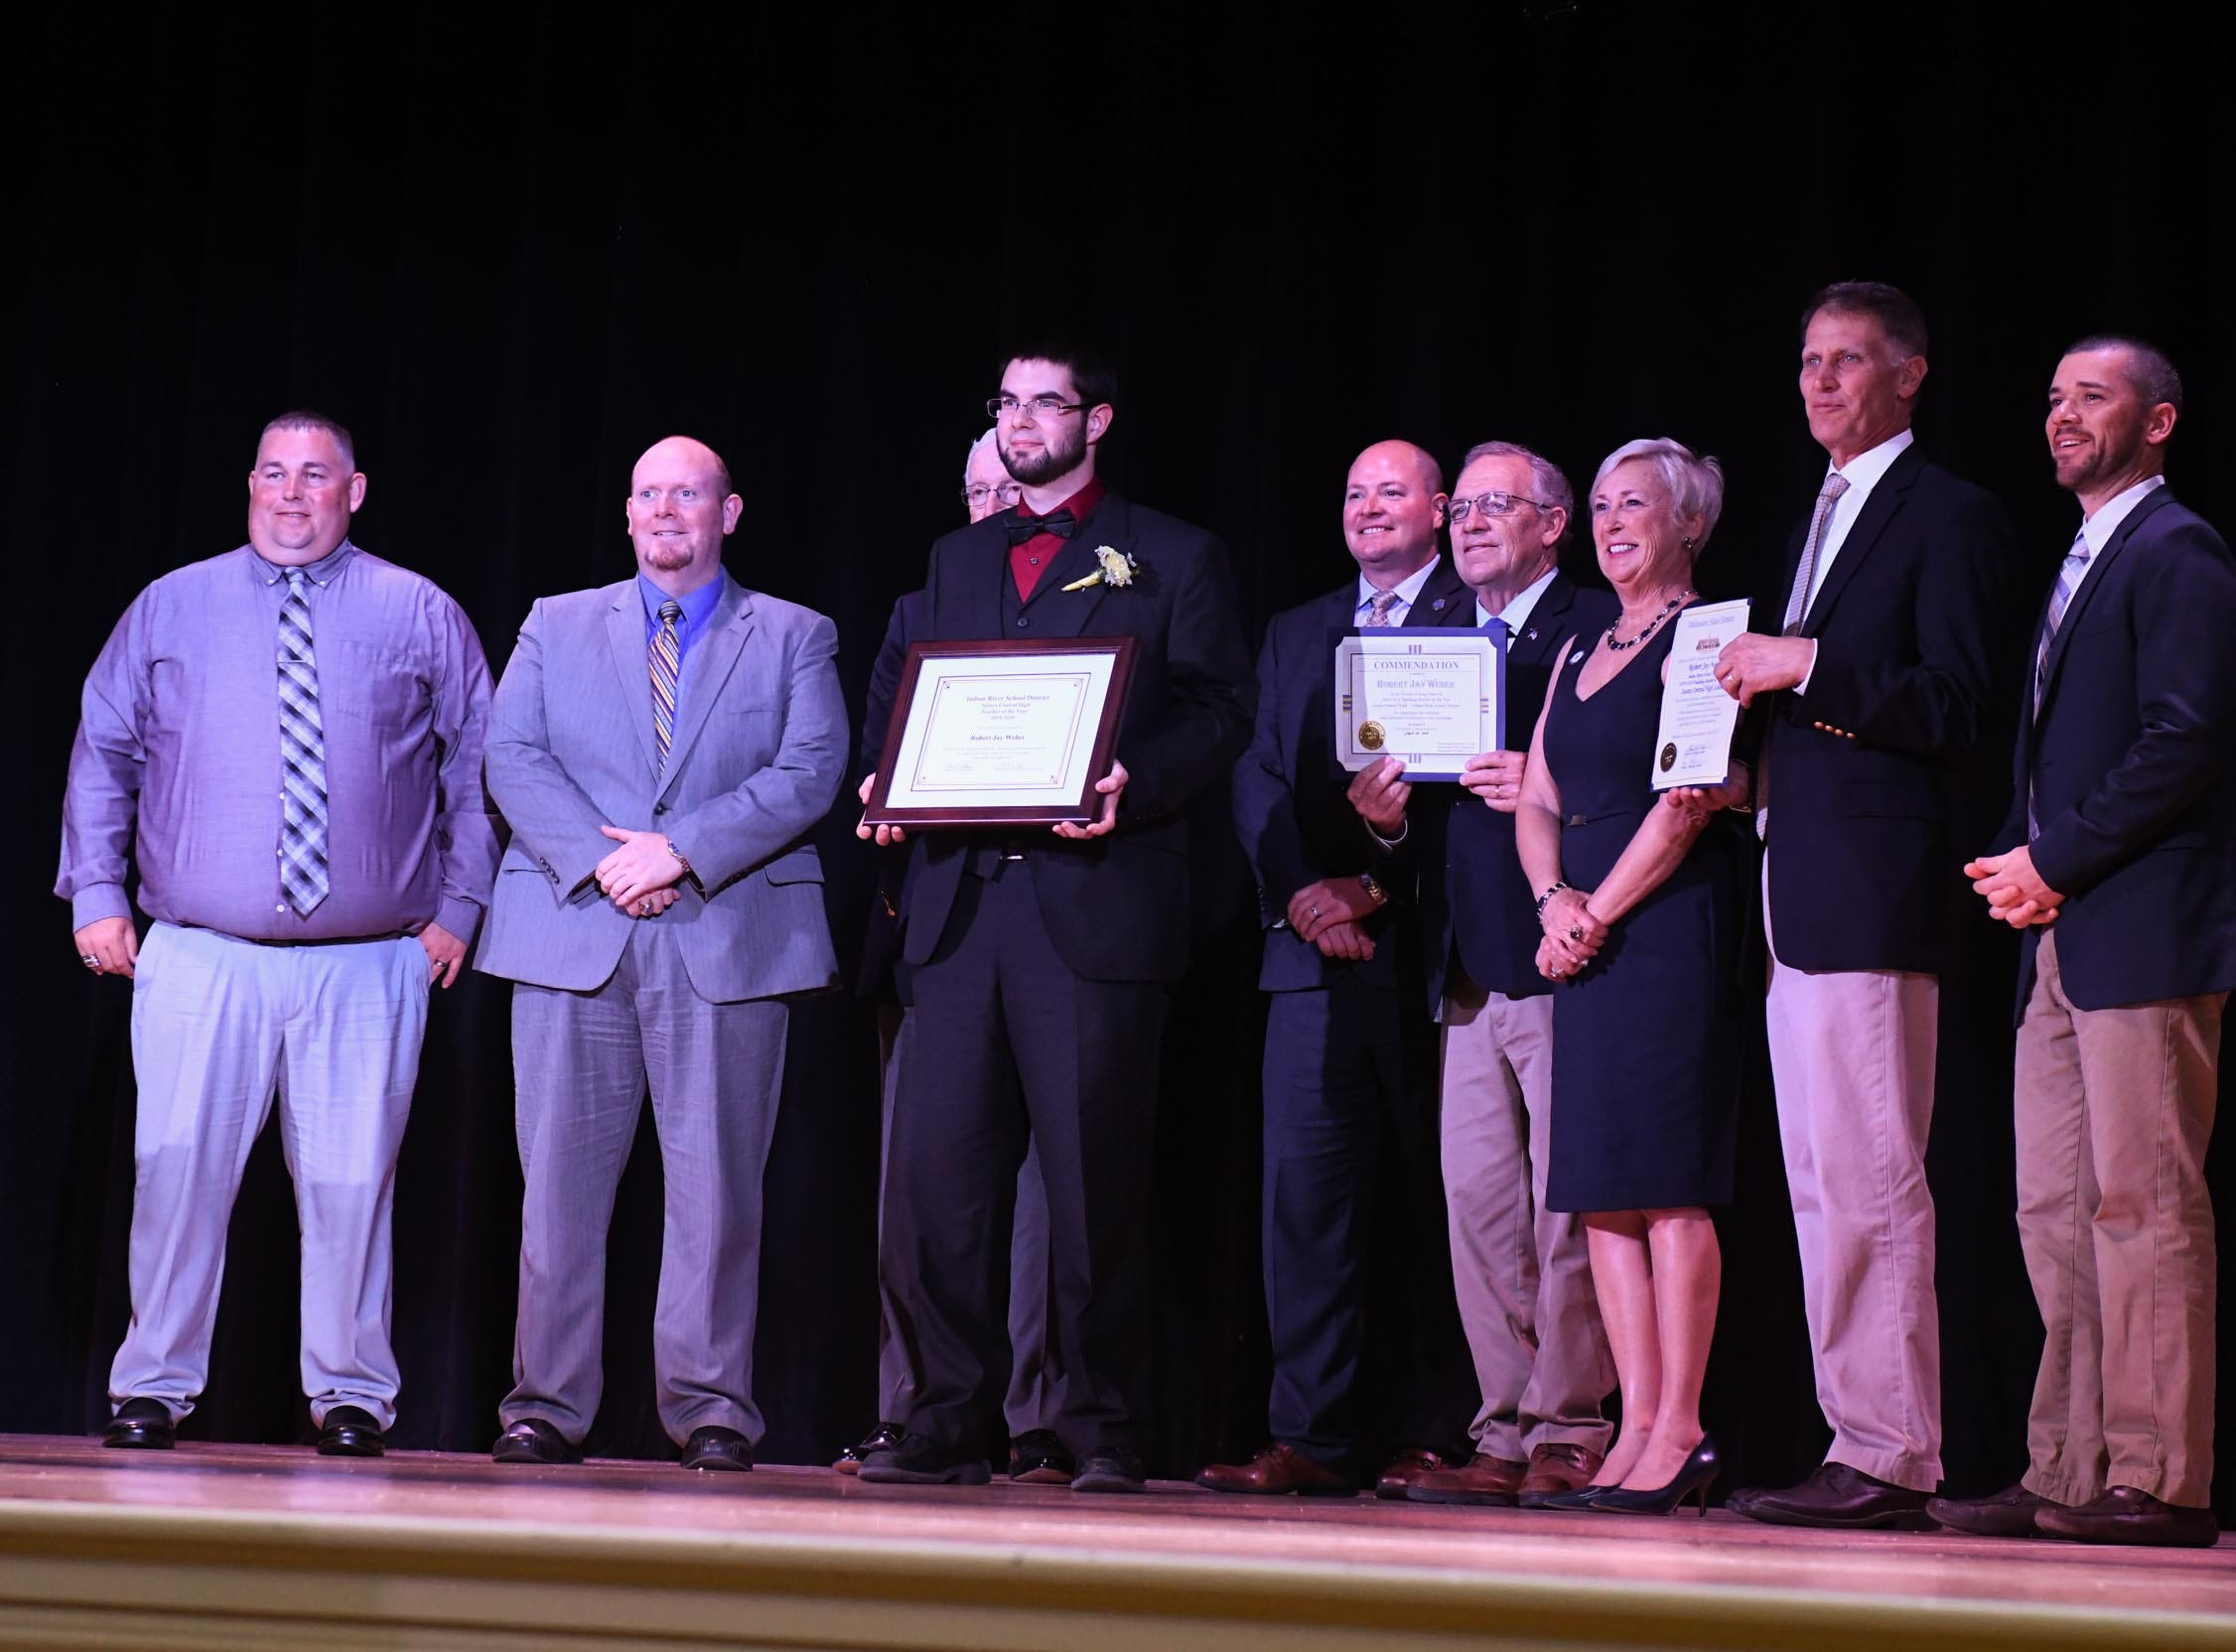 Robert Weber, Sussex Central High School, receives his award for the teacher of the year at his school on Tuesday, April 30, 2019.